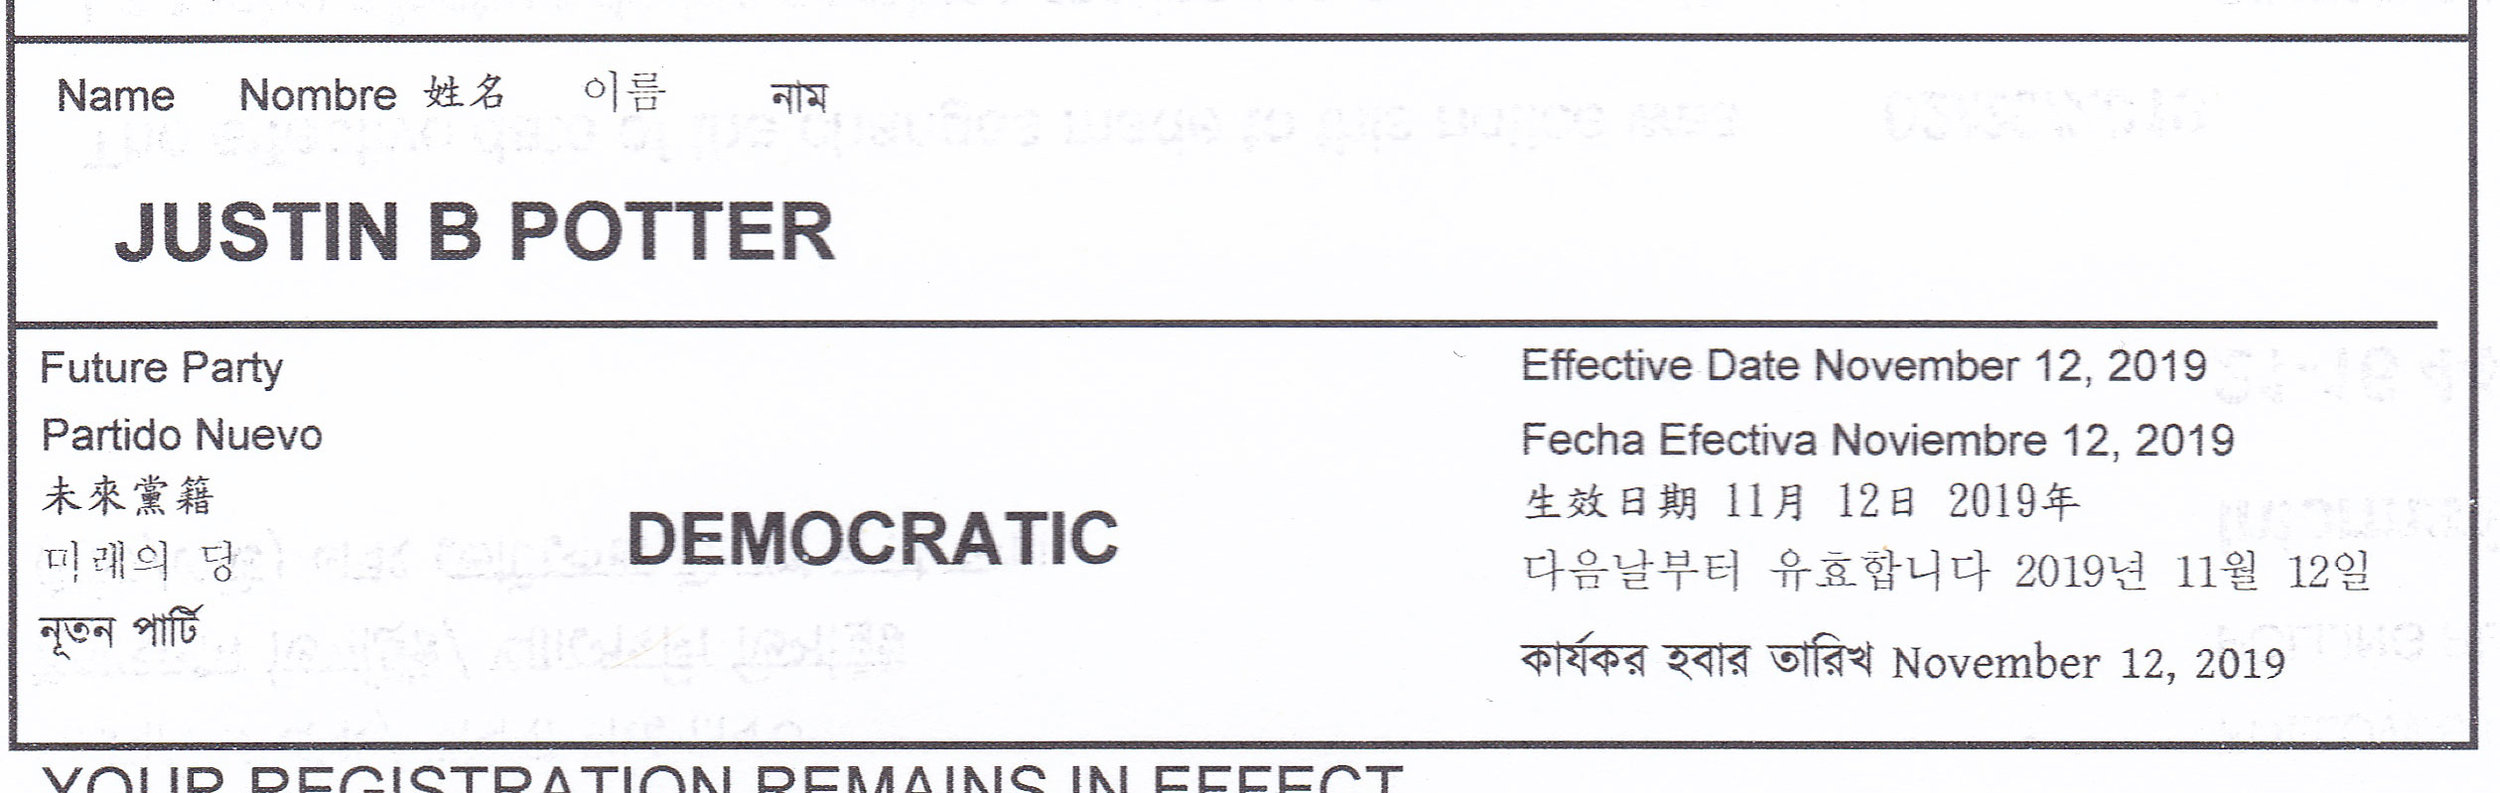 "Back when I registered in NYS, which I think was 2002, on a whim I chose ""Republican"" because of  New York's closed primary system - I thought it would be more interesting voting in Republican primaries and had never contemplated running for anything. On February 19, 2019, I went to Kew Gardens and switched my registration, but it isn't going to be effective until November 12, 2019."